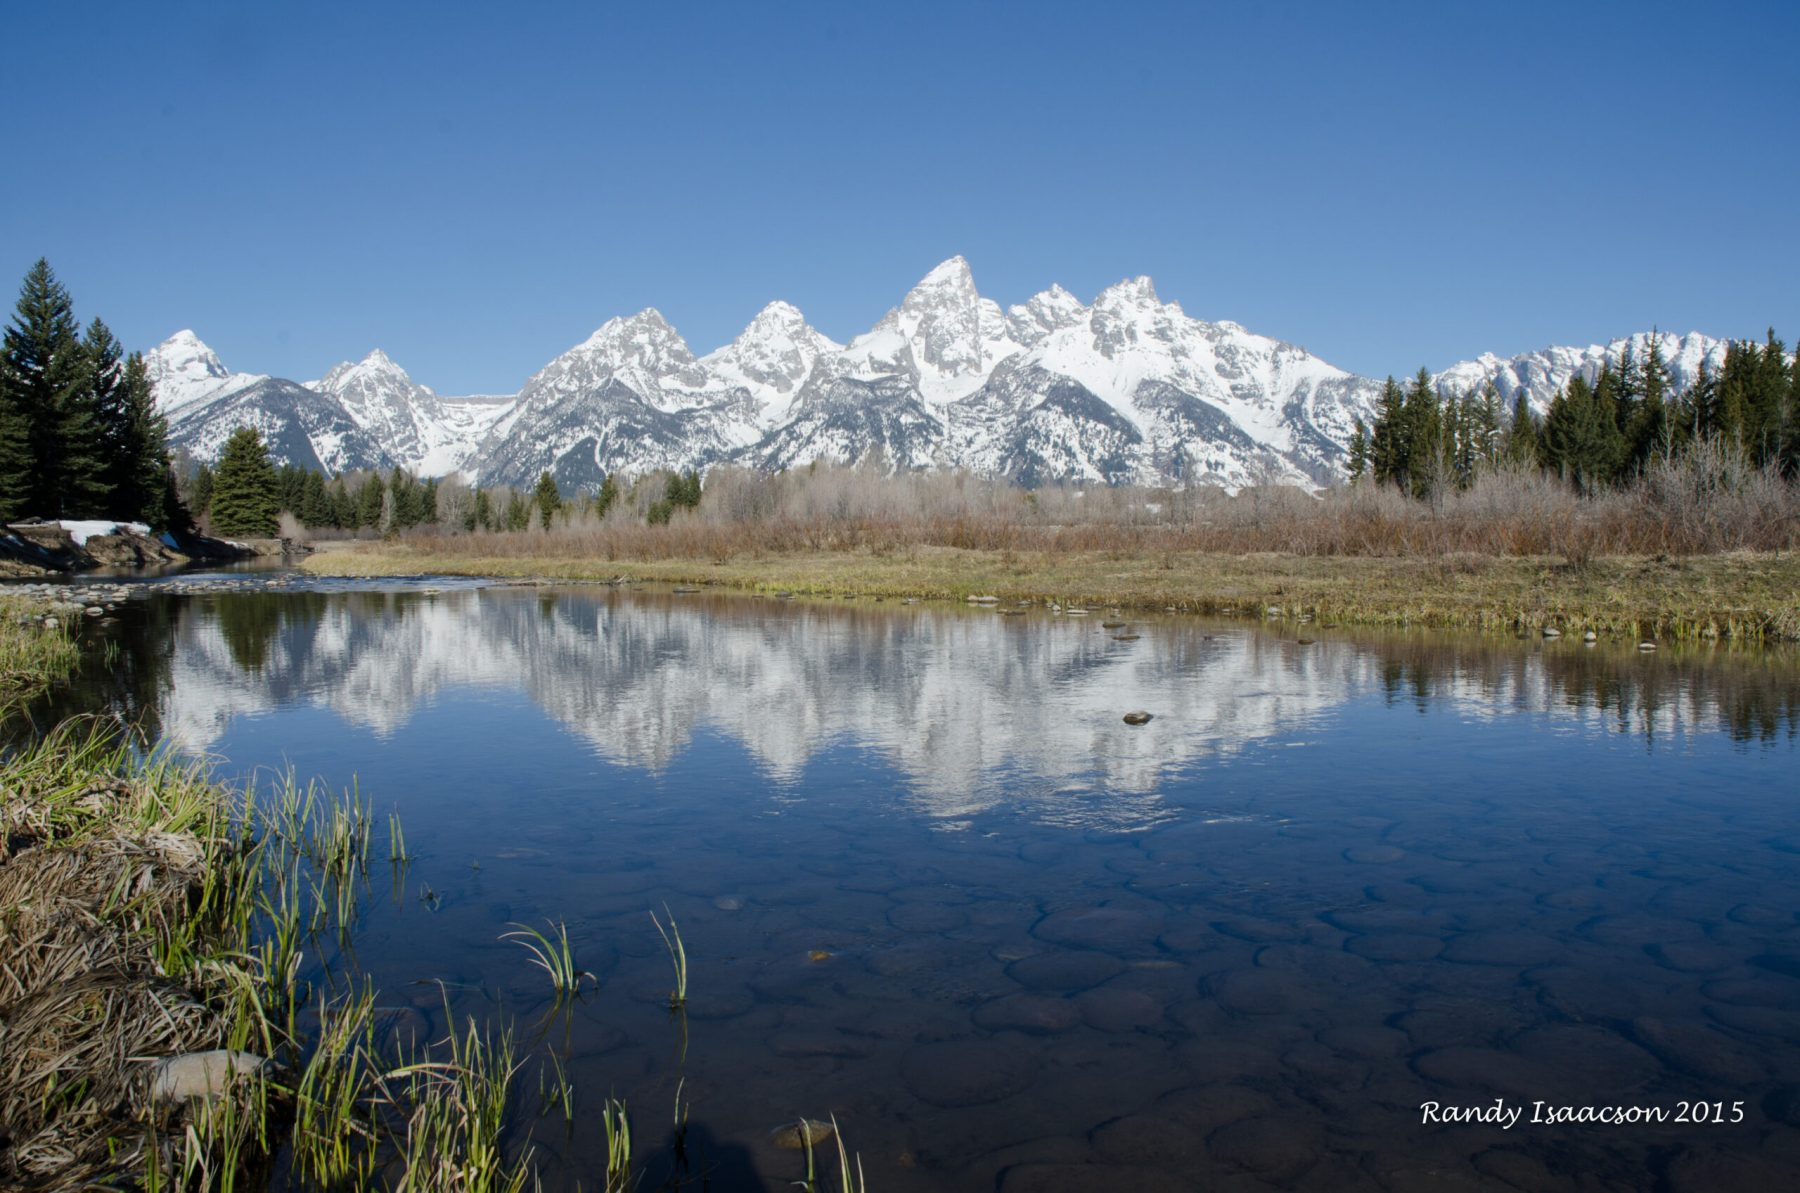 Schwabacher's Landing on April 18, 2015.  This photo was taken at about 8:30 am on the south end of the Landing.